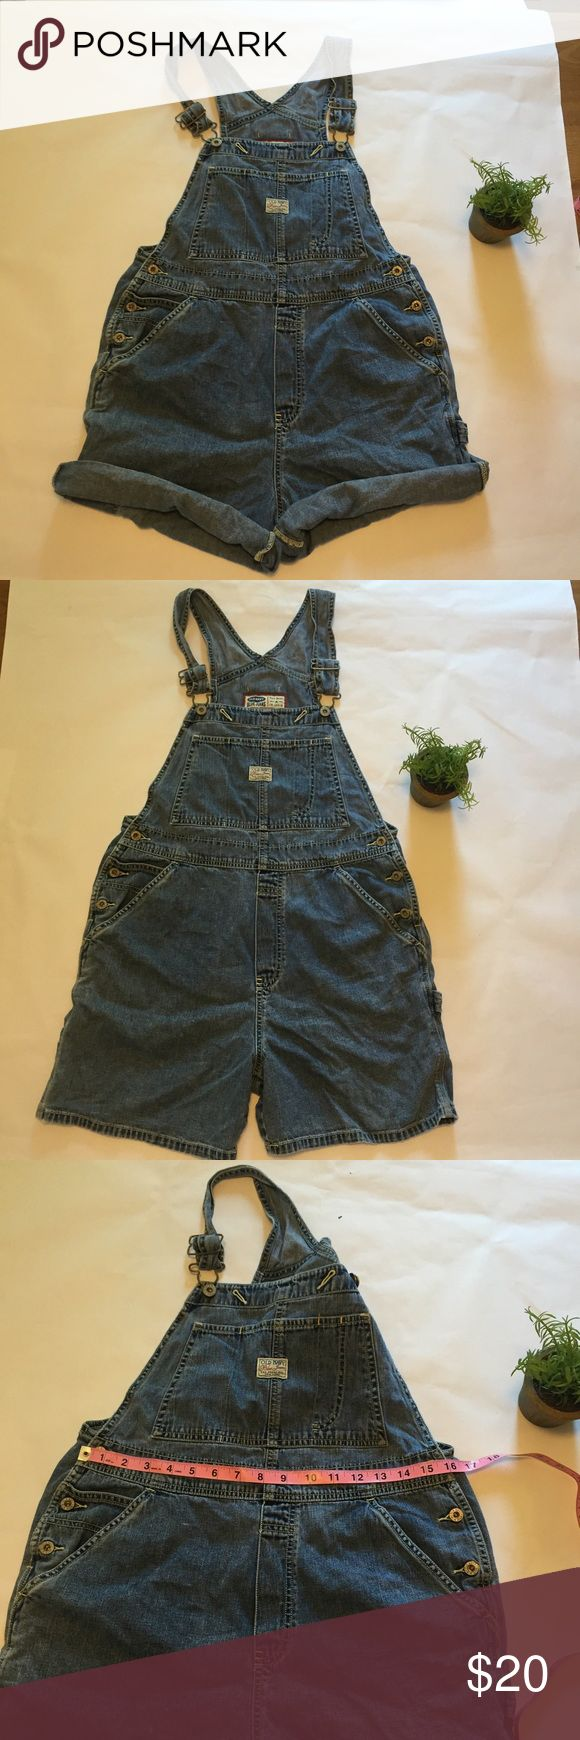 Old navy overall shorts Sz M Old navy overall shorts Sz M Old Navy Shorts